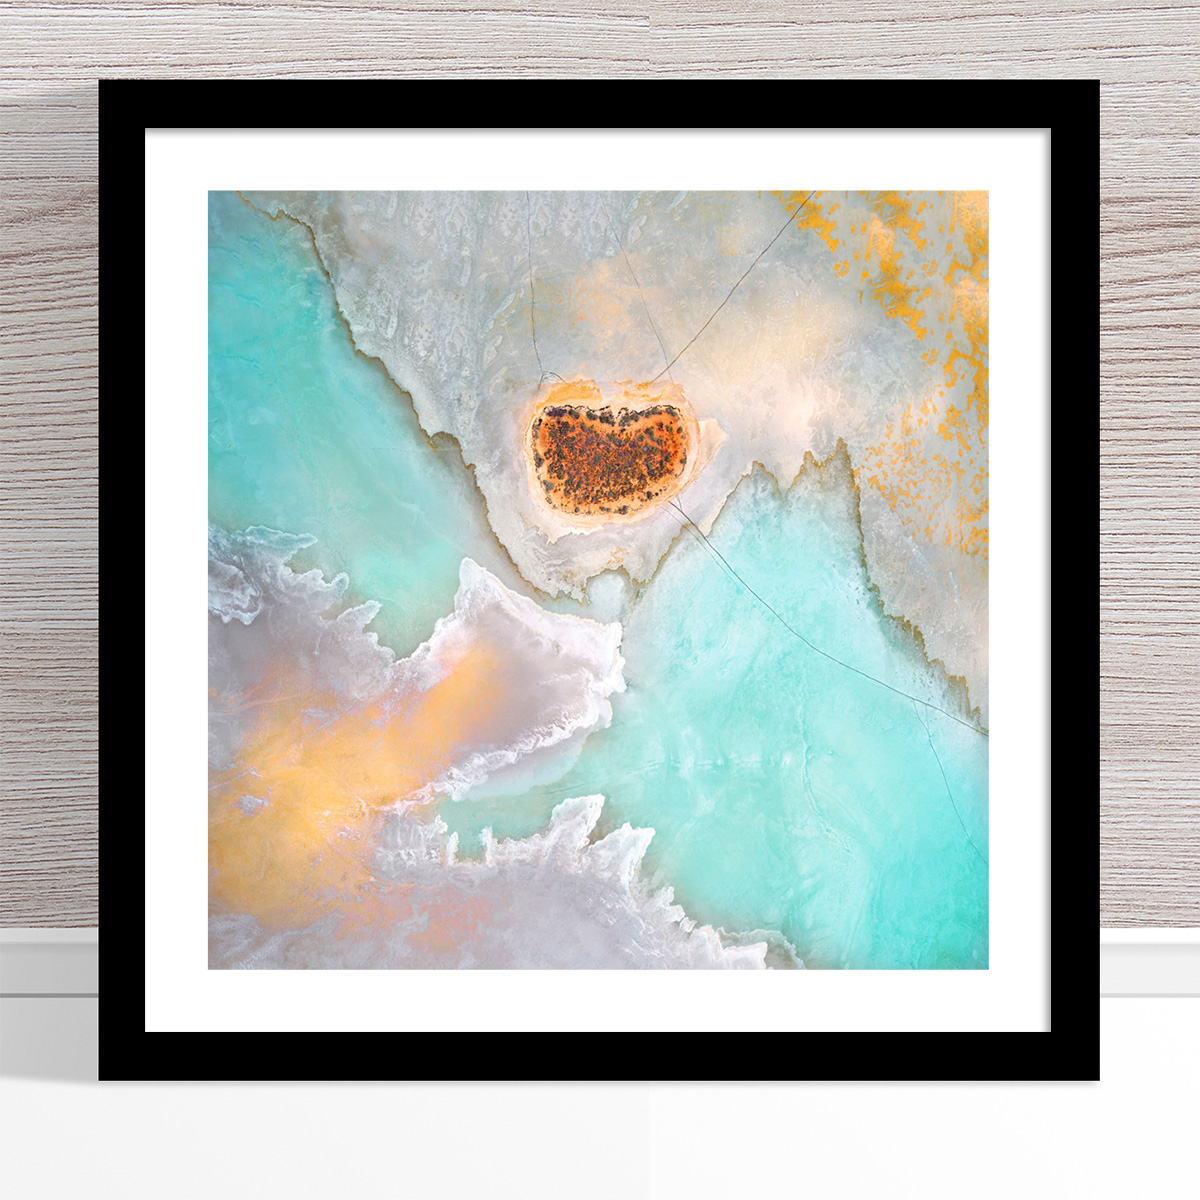 Chris Saunders - 'Aerial Salt 039' Black Frame